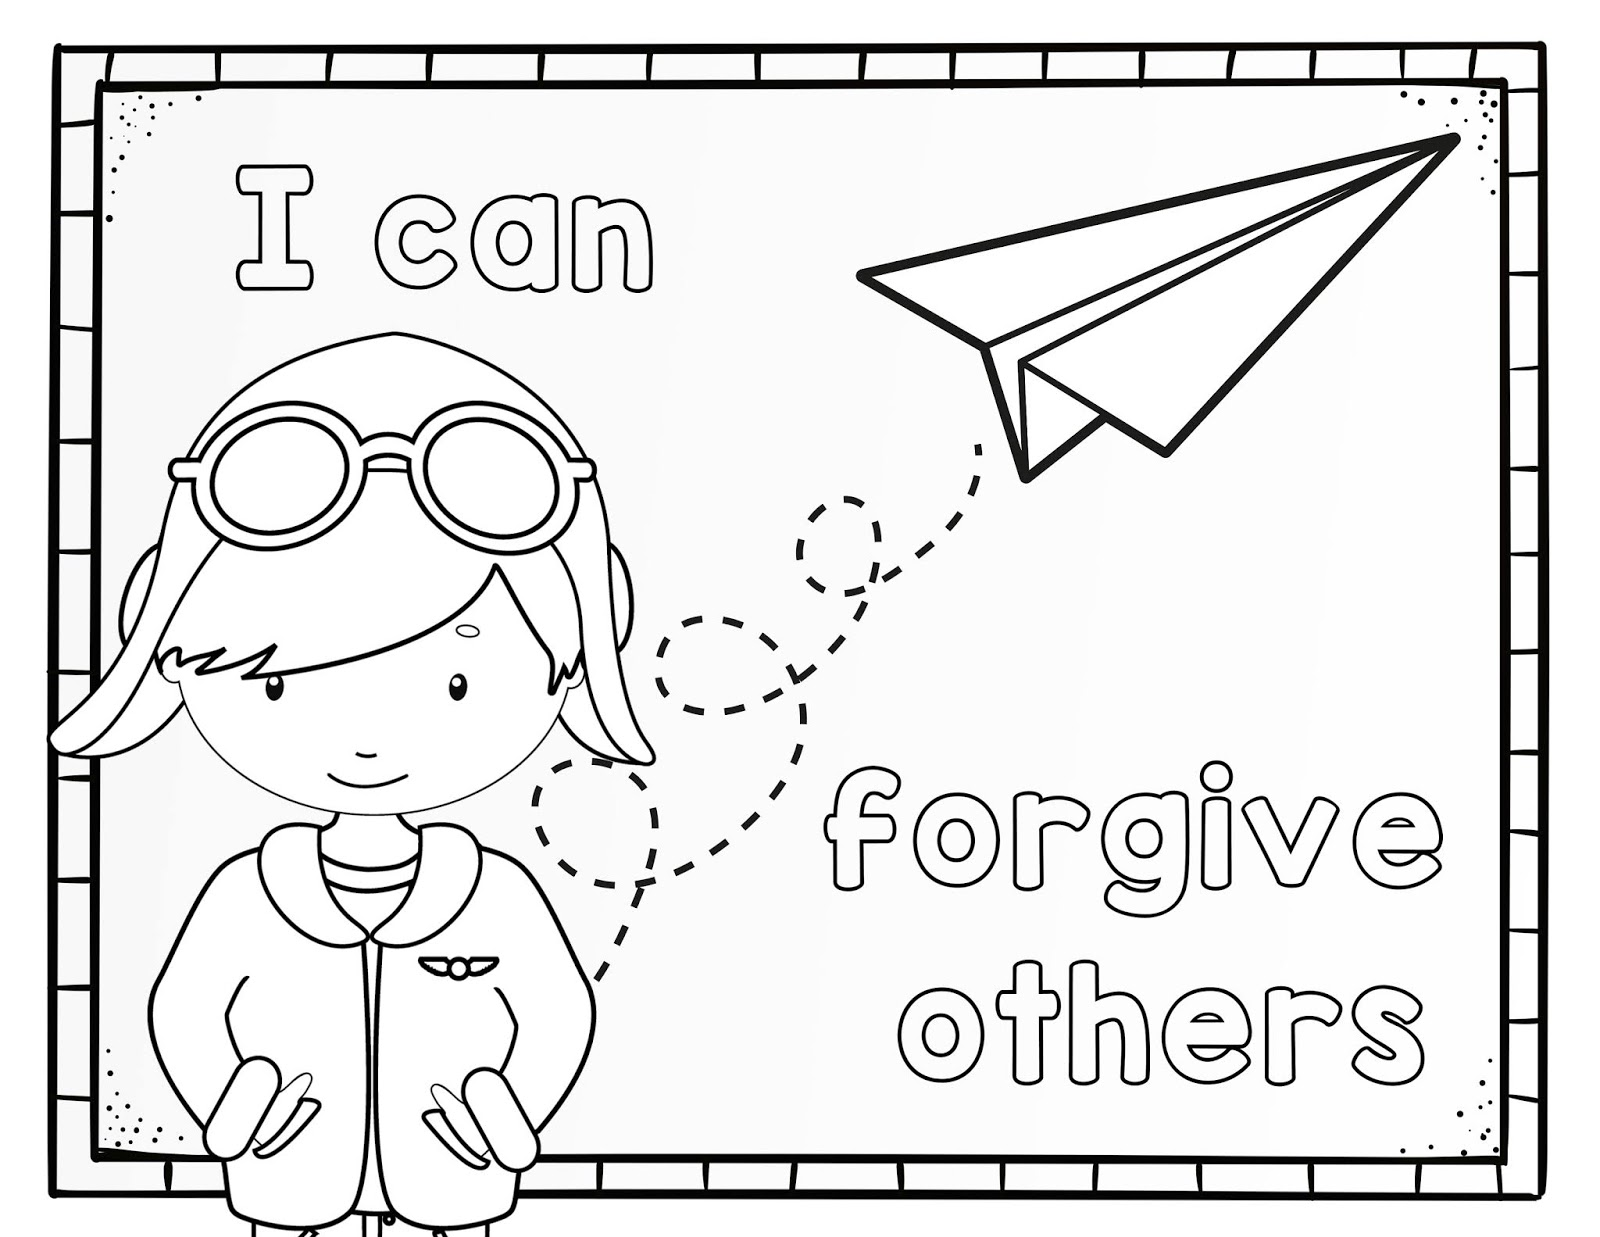 Coloring pages about forgiveness ~ The Cozy Red Cottage